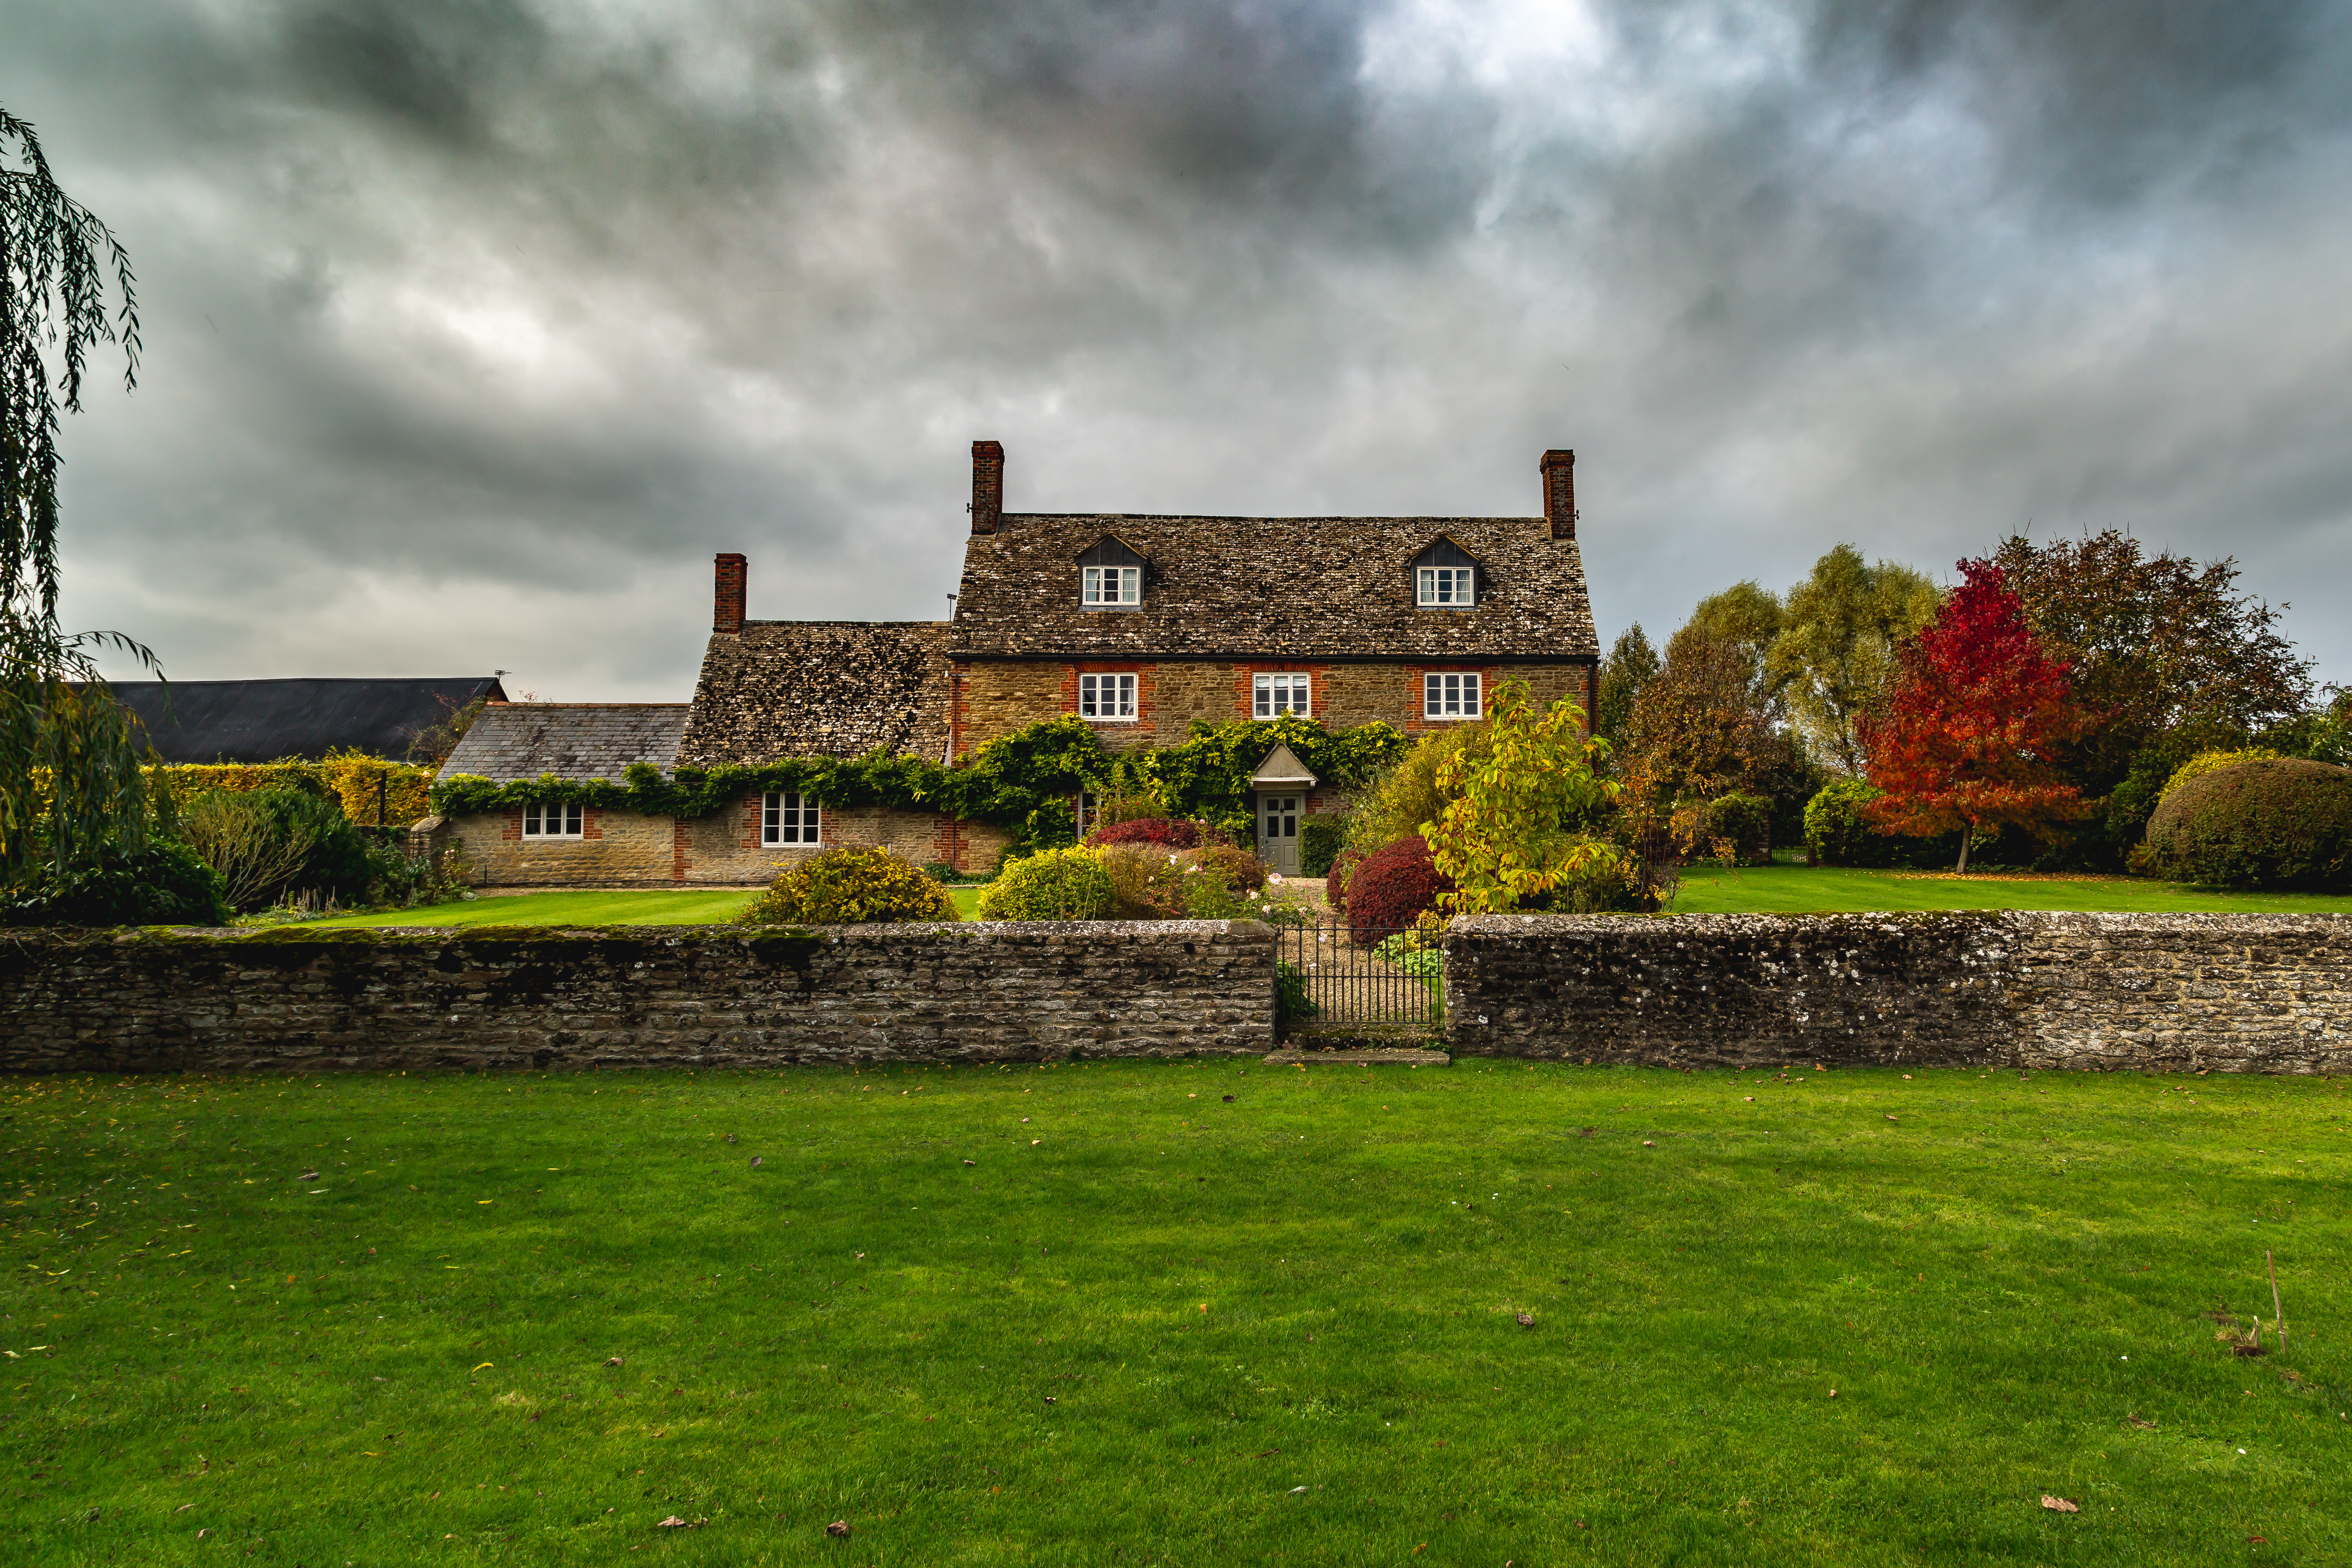 beautiful countryside period home cloudy day